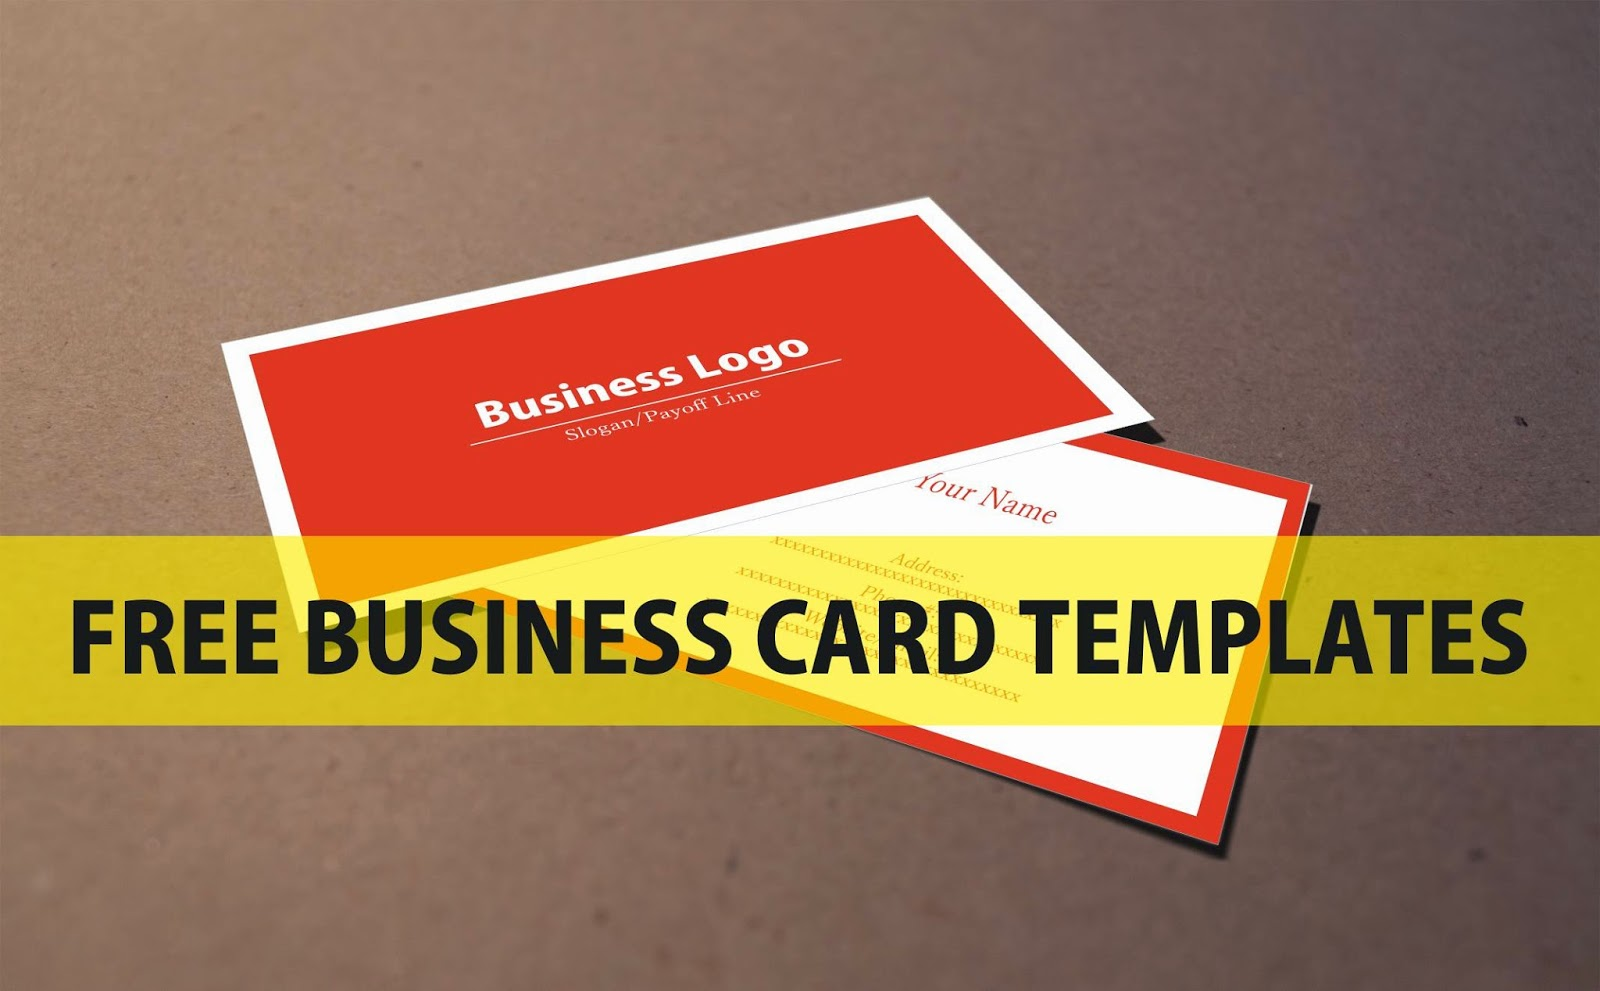 Free Business Card Template Coreldraw File